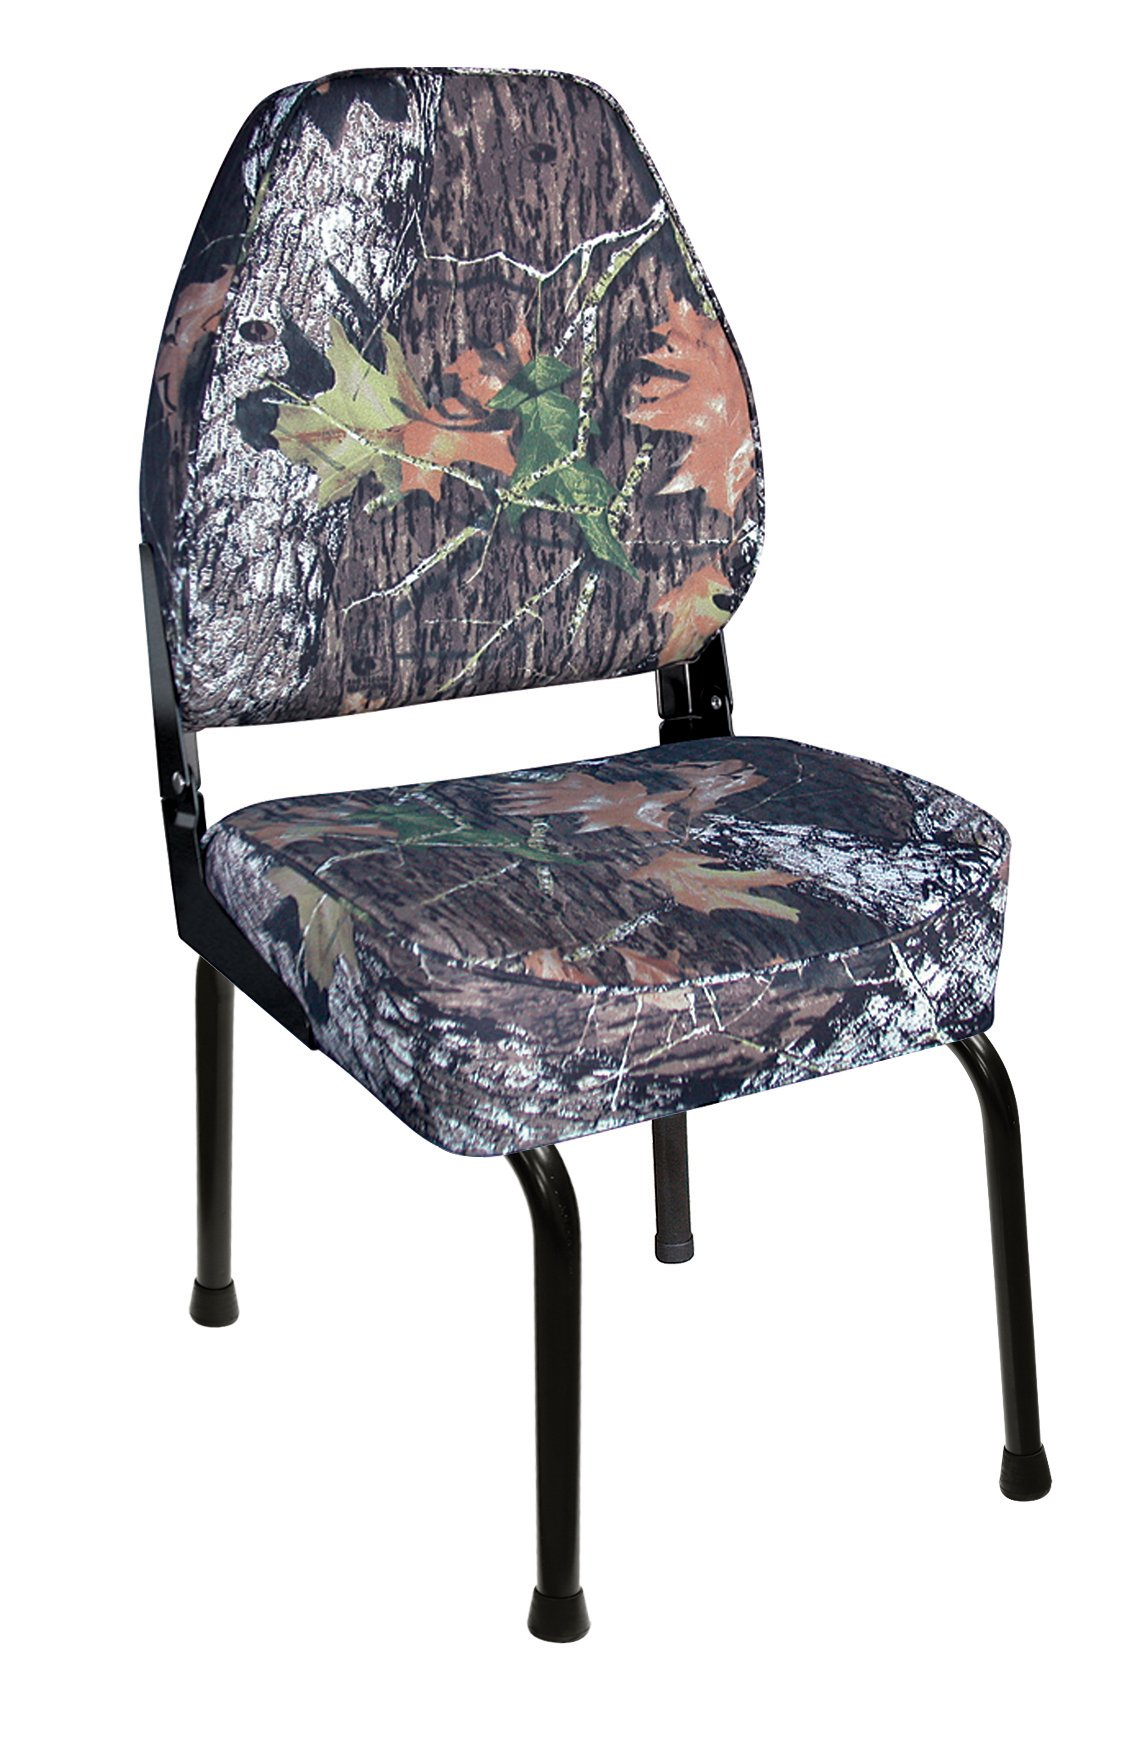 Wise Outdoors WD304-763FLD Hunting Blind Seat Combo with Folding Seat Stand & Swivel, Mossy Oak Break-Up Camo